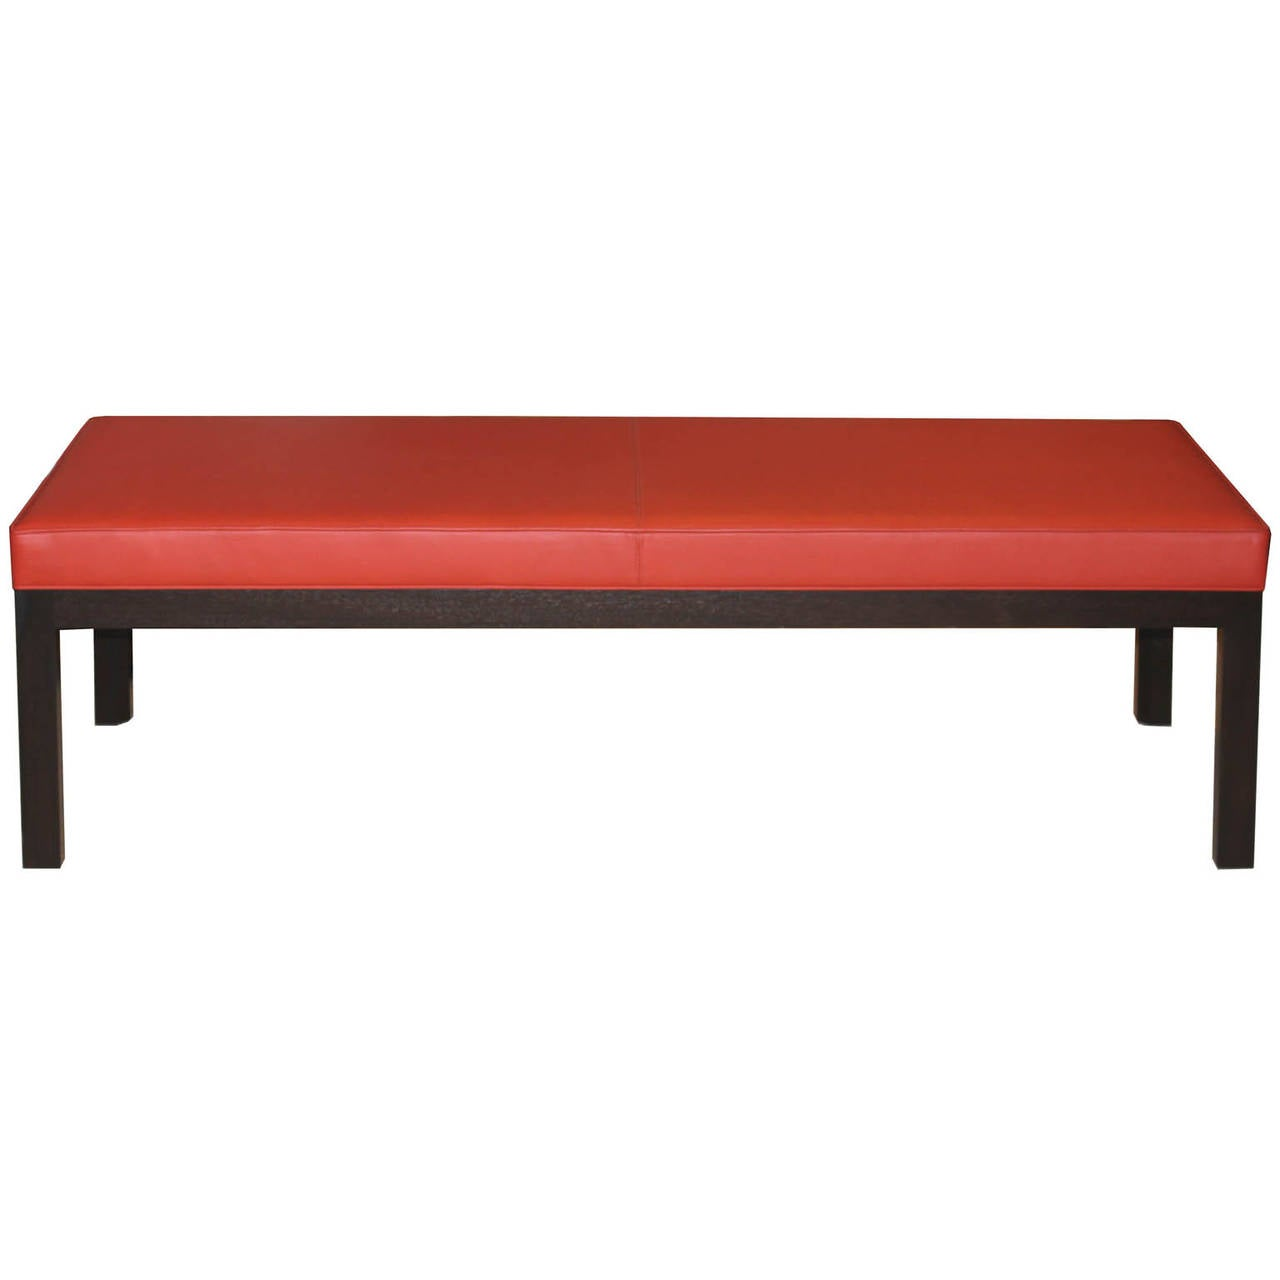 Red Leather Benches 28 Images Red Leather Bench At 1stdibs Tufted Red Leather Bench By